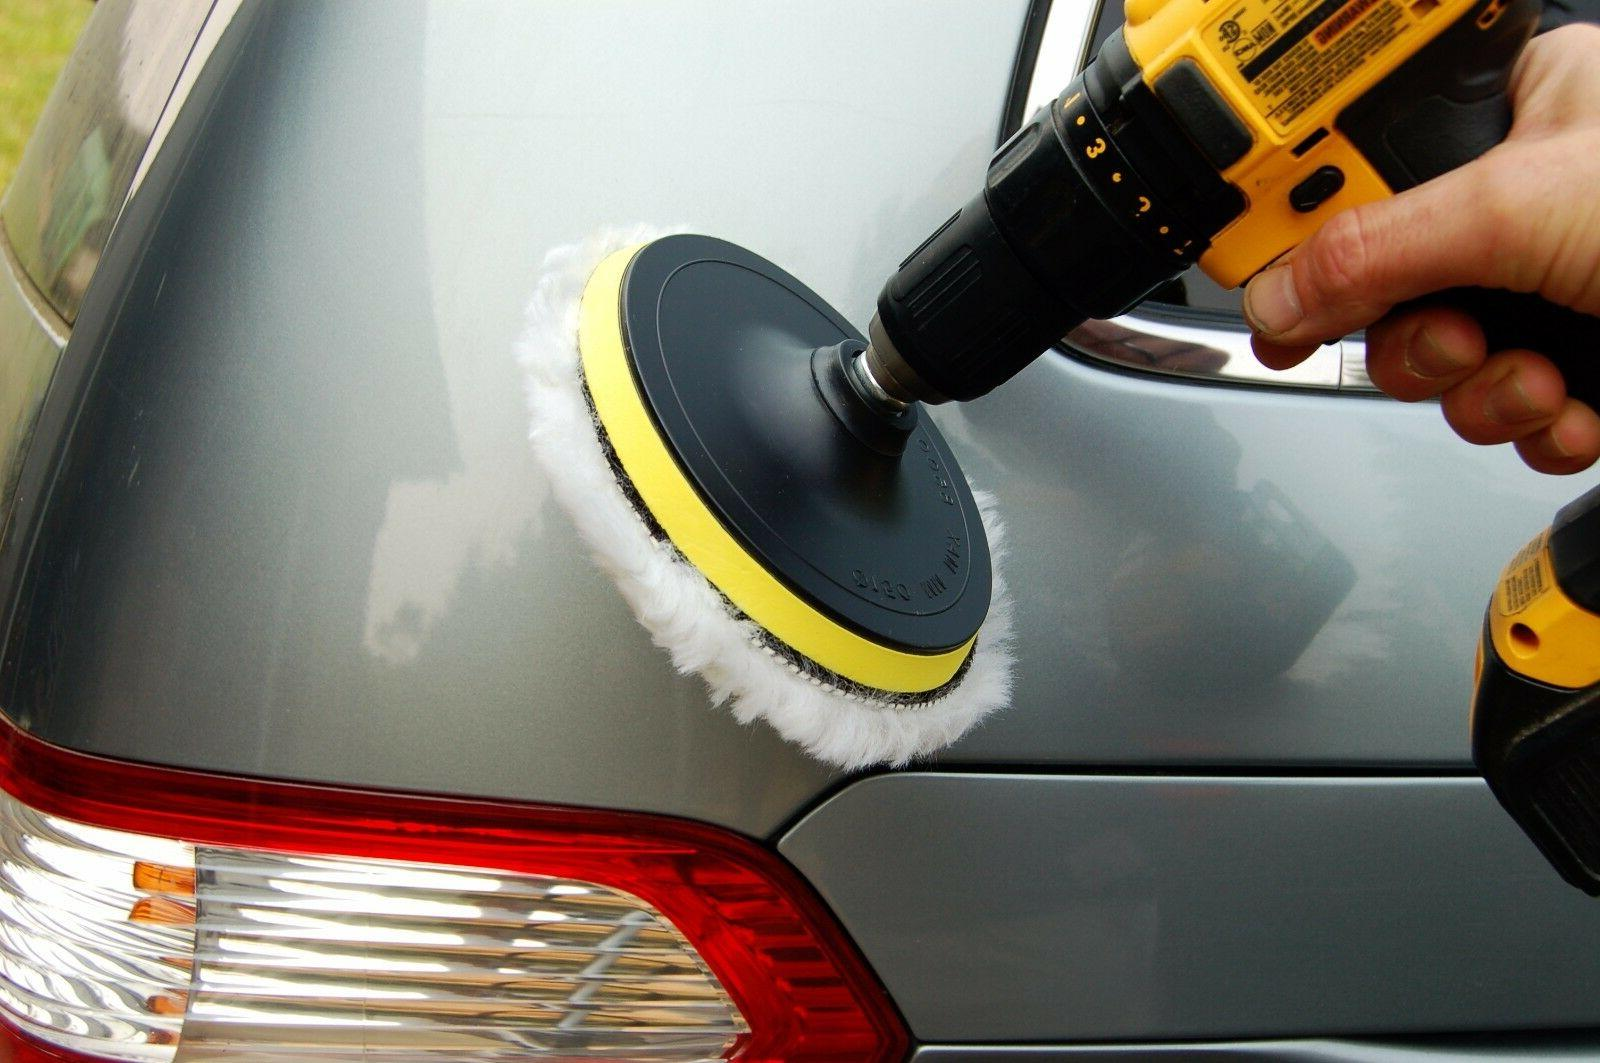 Ultimate Air Polisher for Fabricators